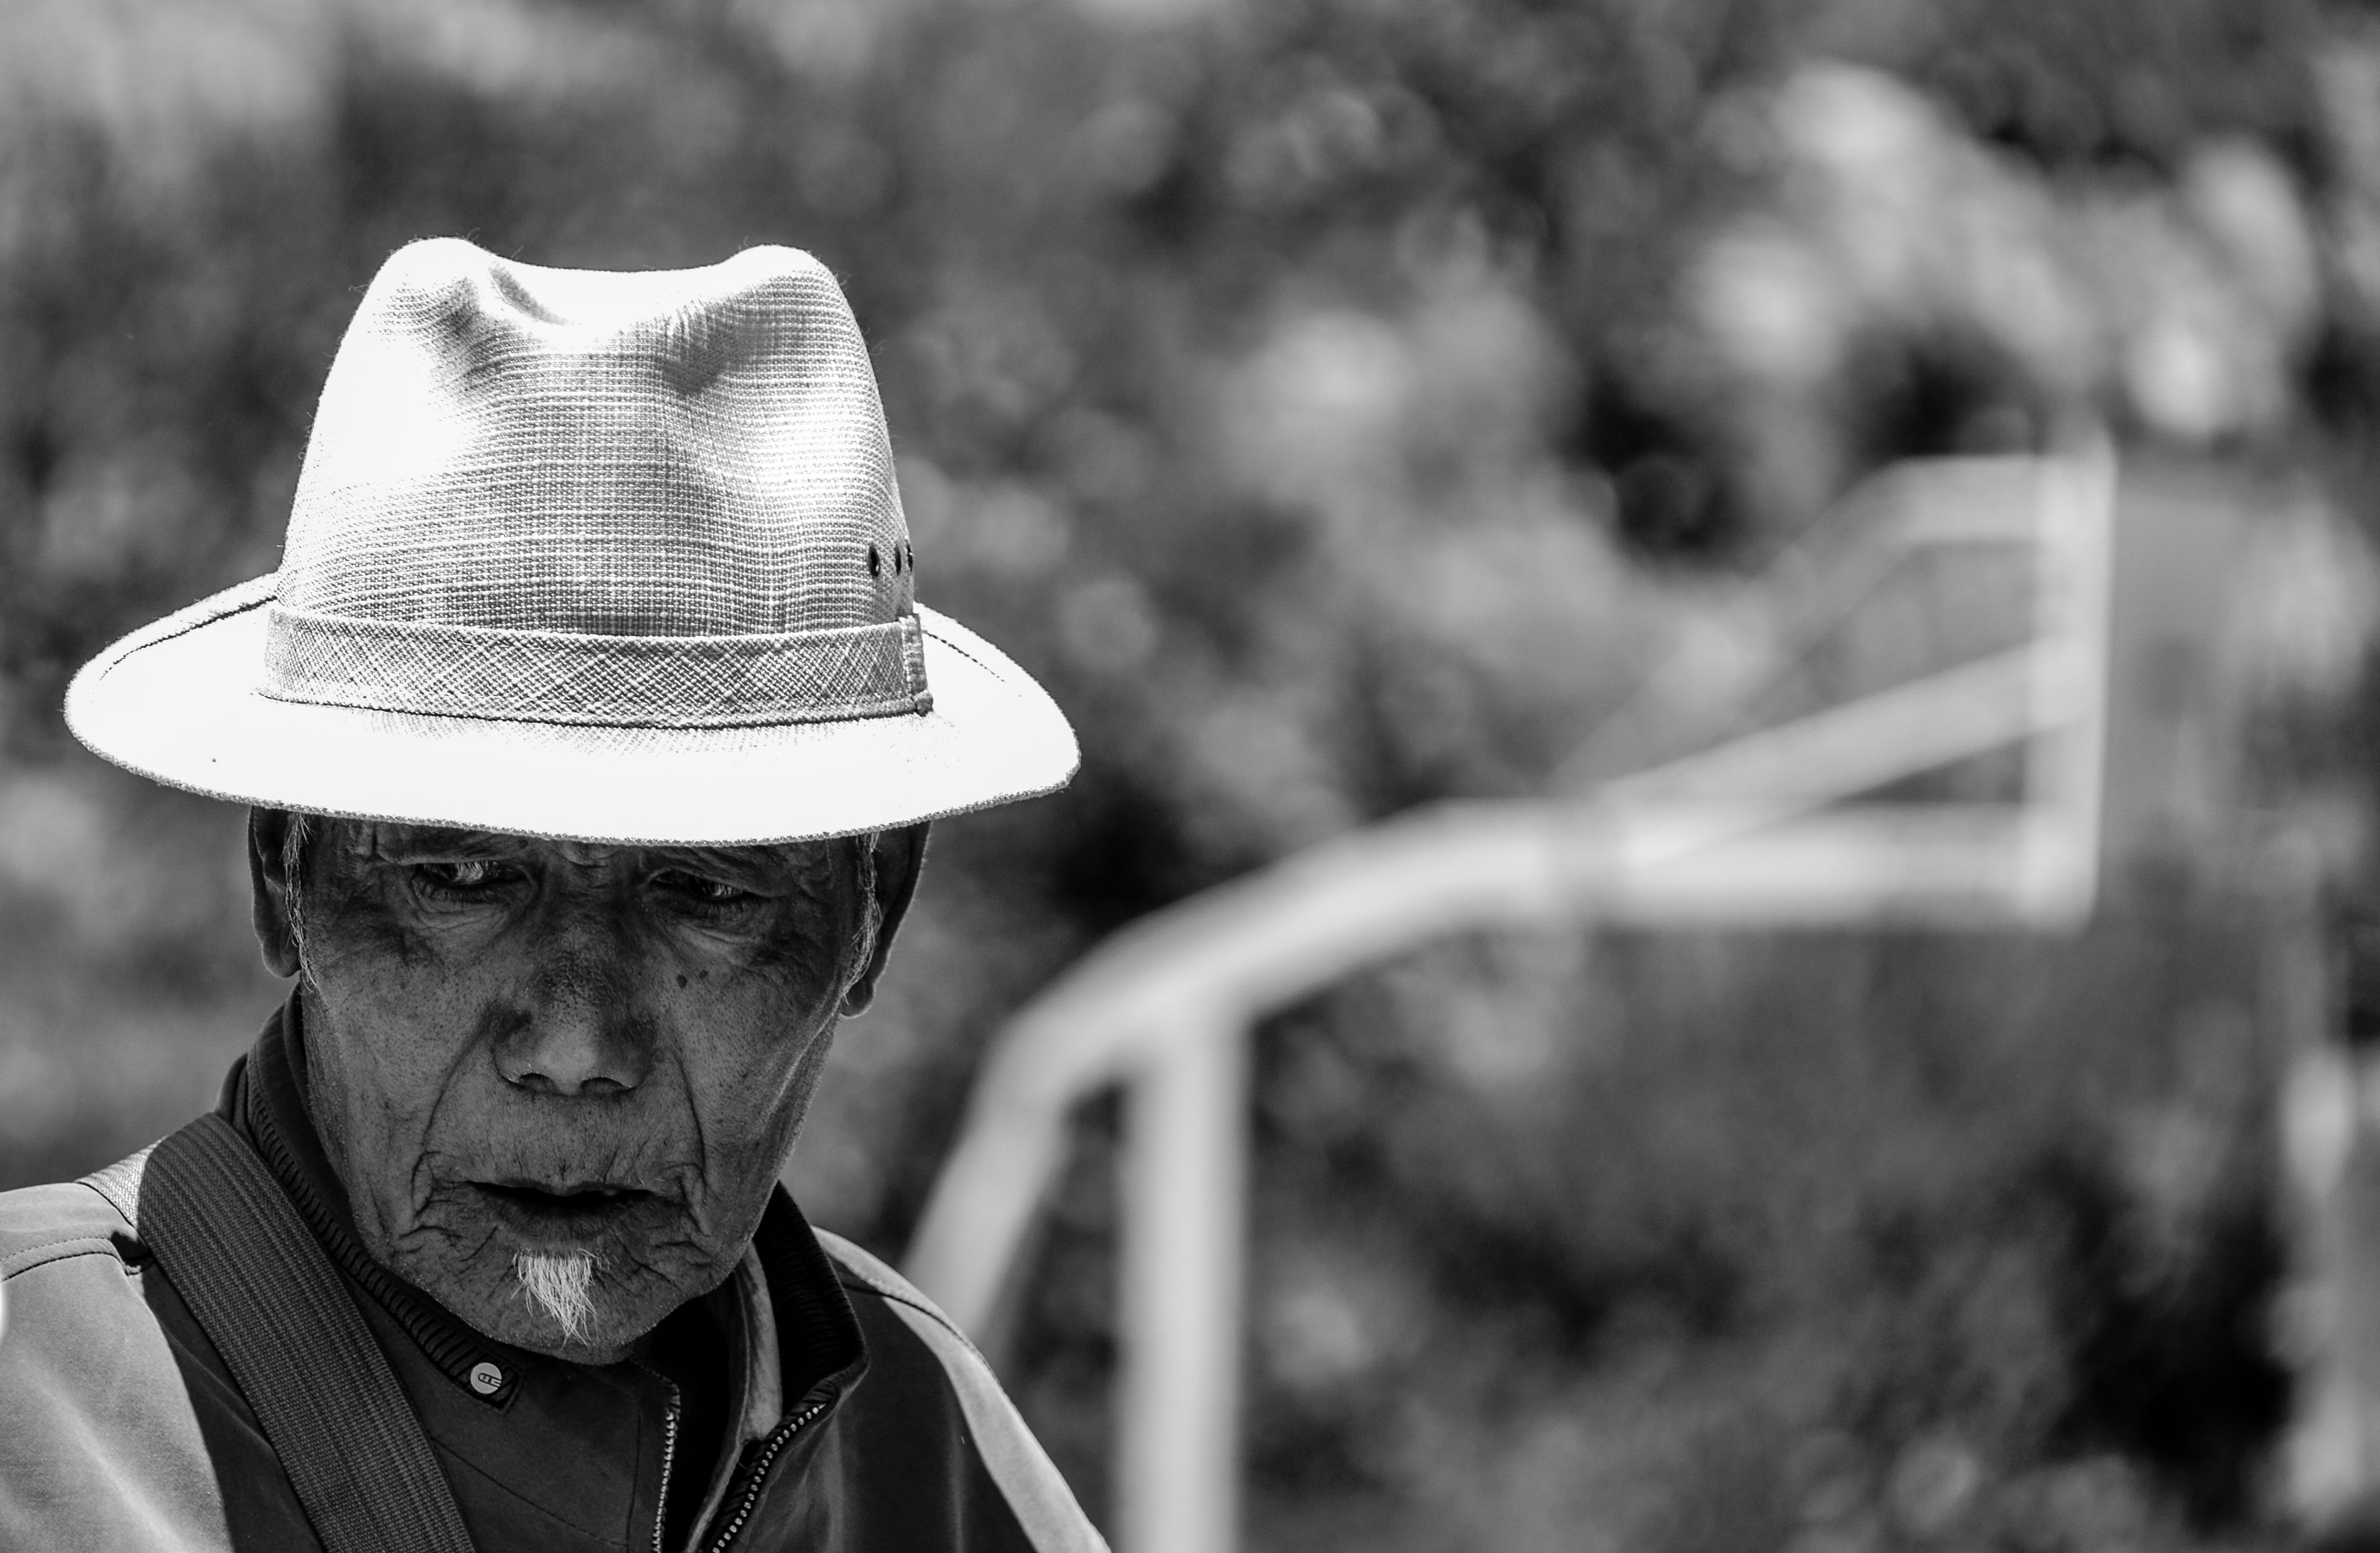 A weathered, old man wearing a fedora hat in Tibet